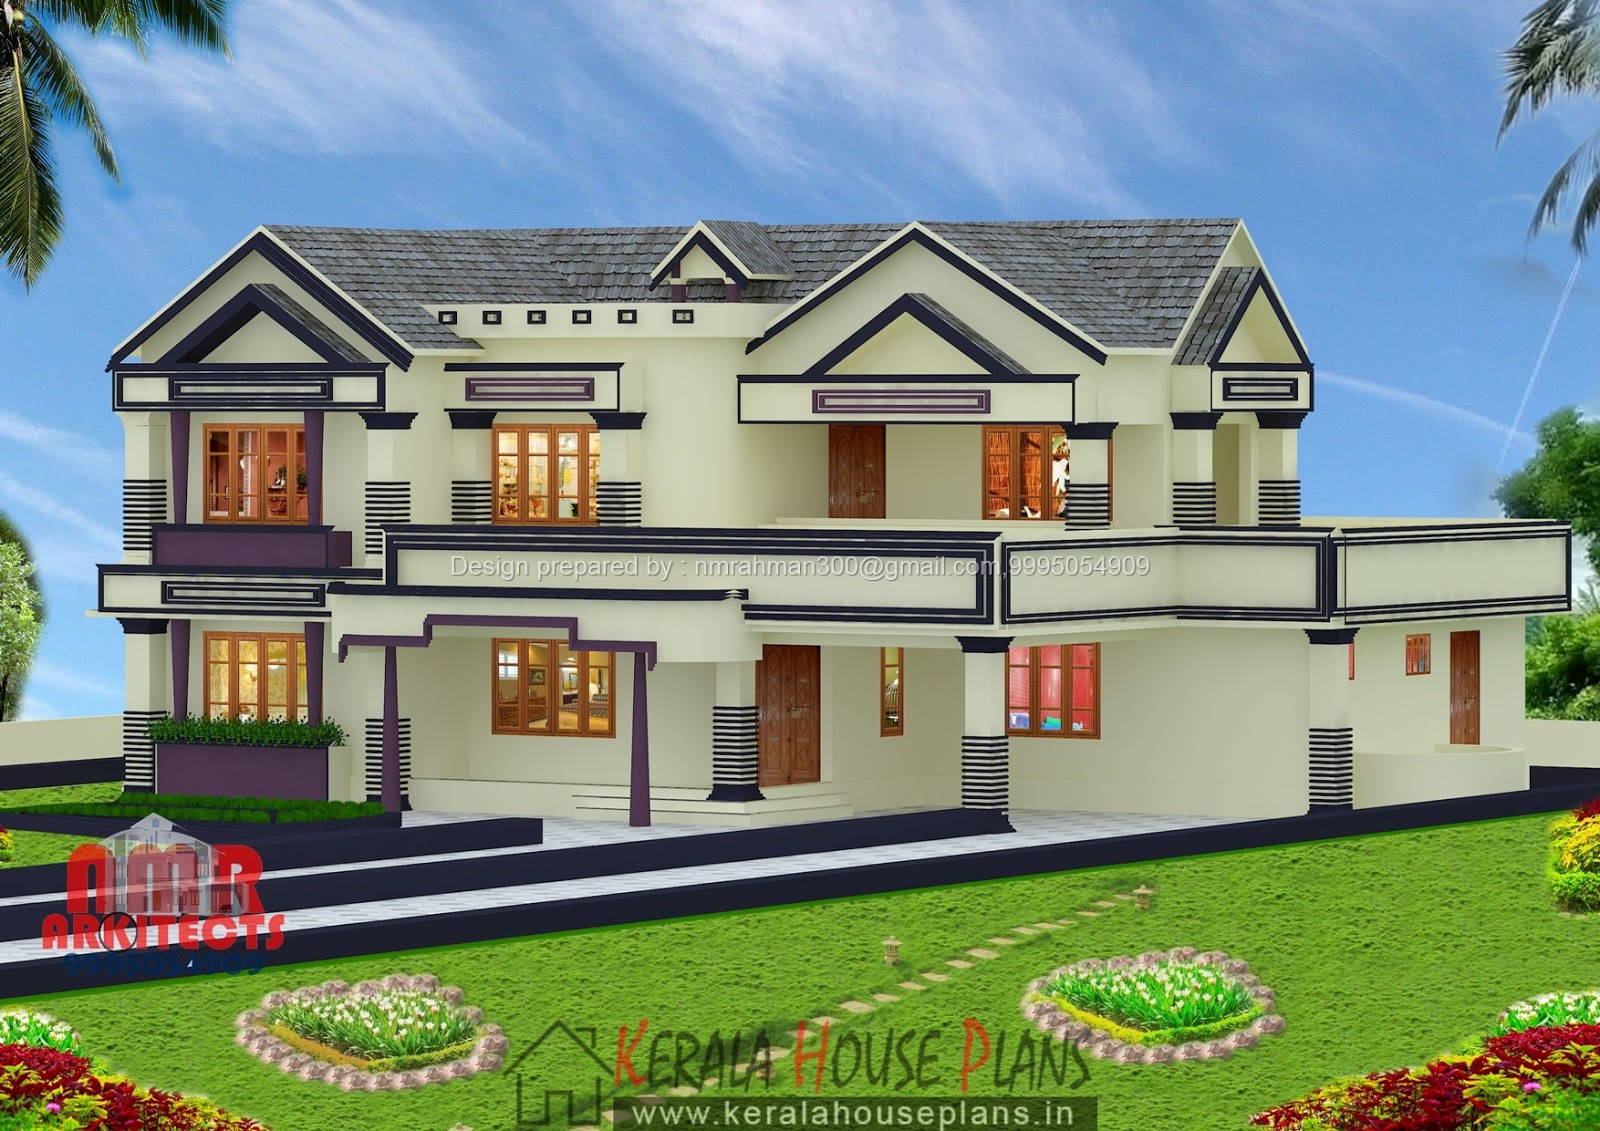 Kerala house plans above 3000 sq ft kerala house plans for 3000 sq foot house plans